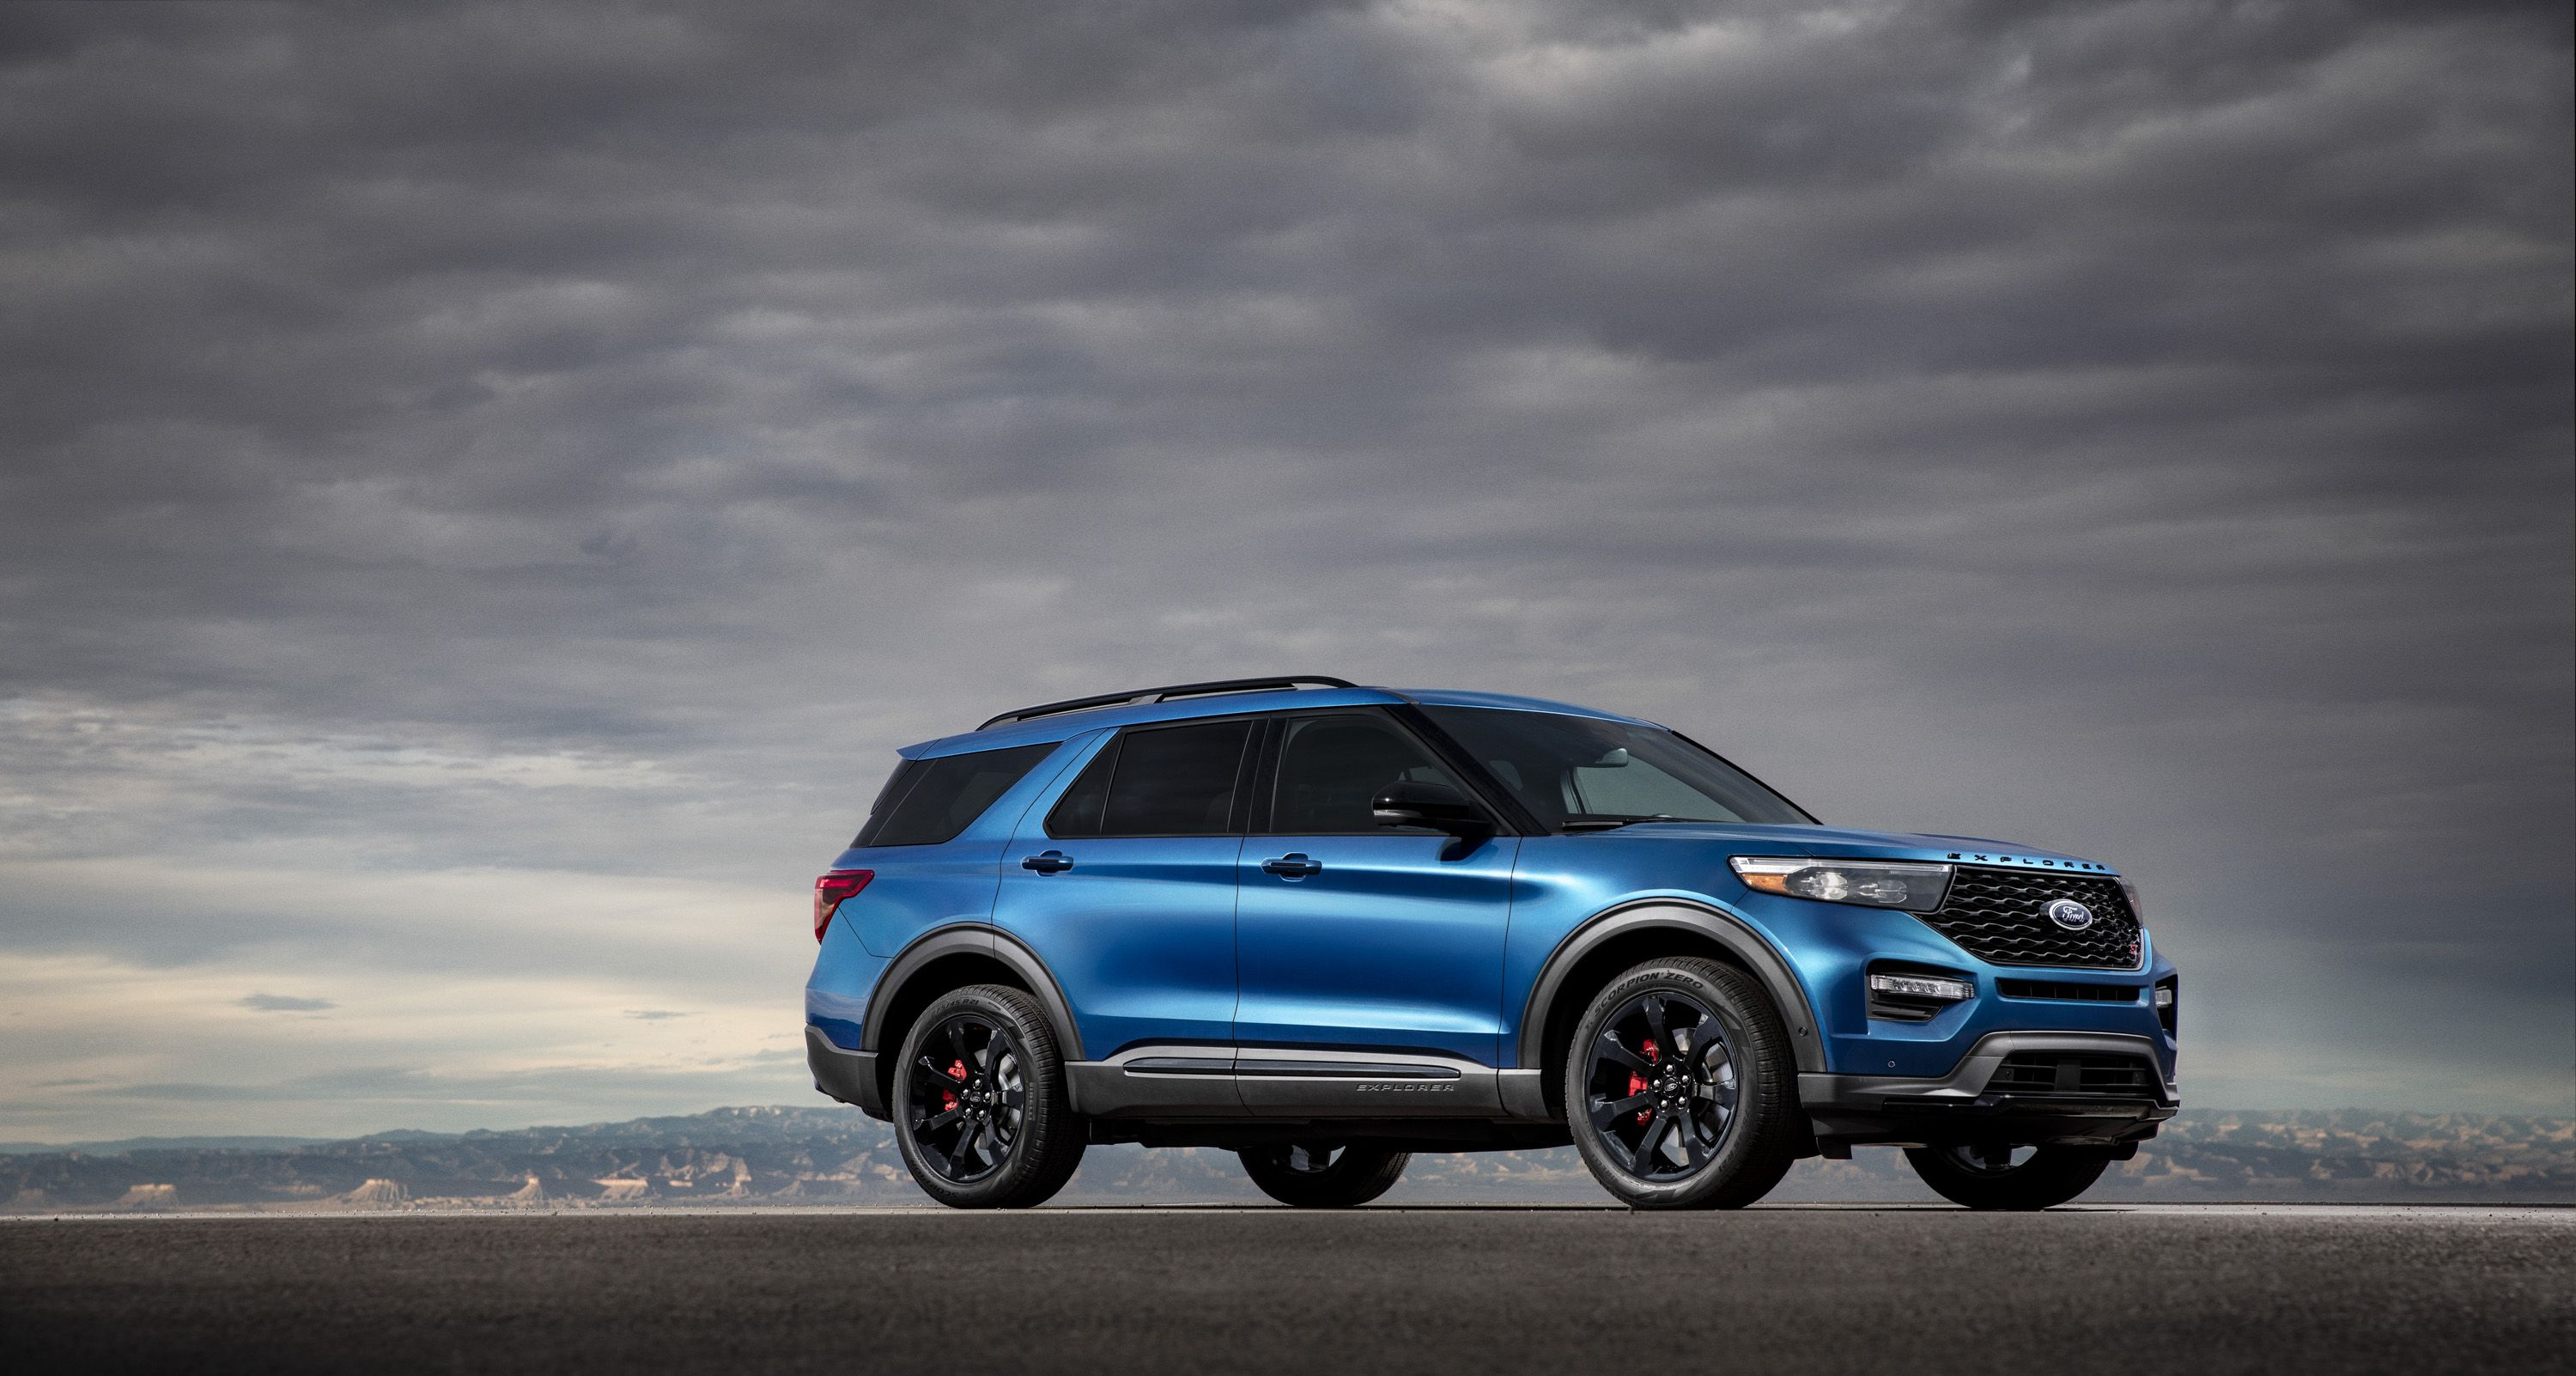 2020 Ford Explorer St Has 400 Hp Wants To Be Taken Seriously As A